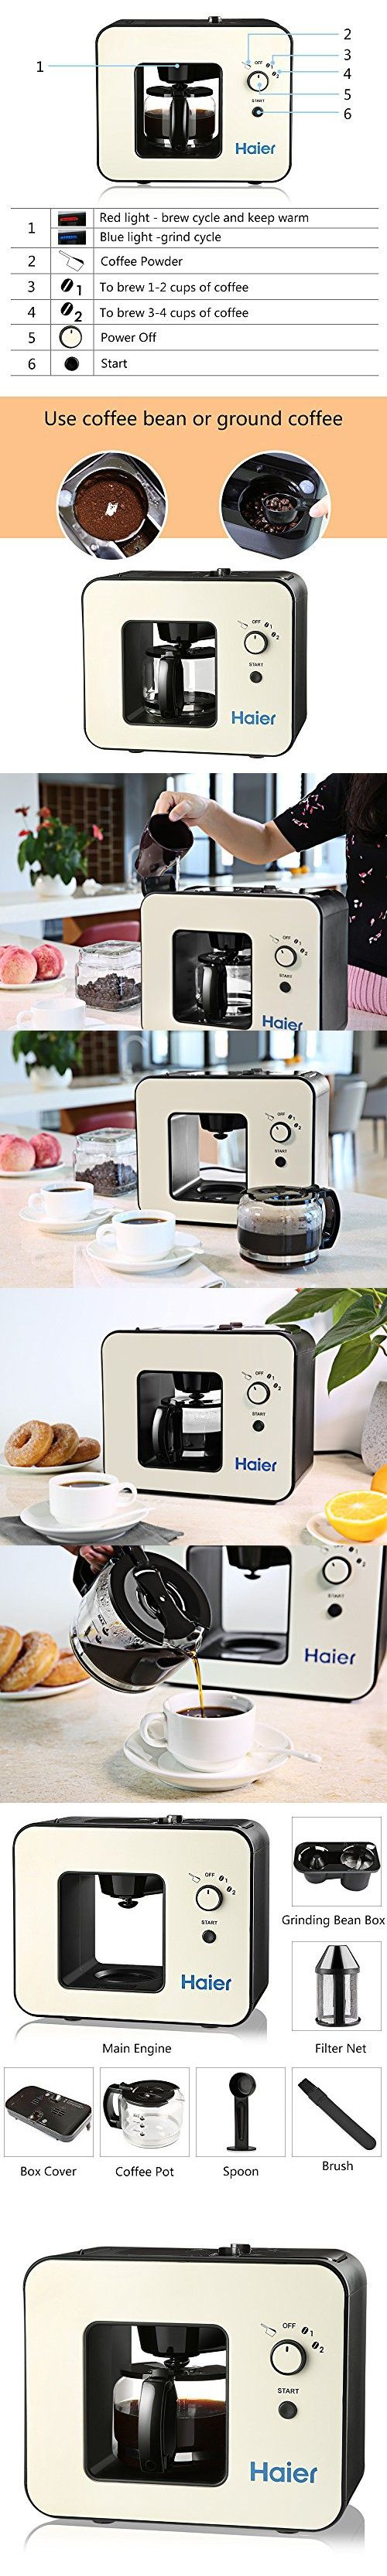 Image Result For Krups Coffee And Espresso Combination Machine Manual